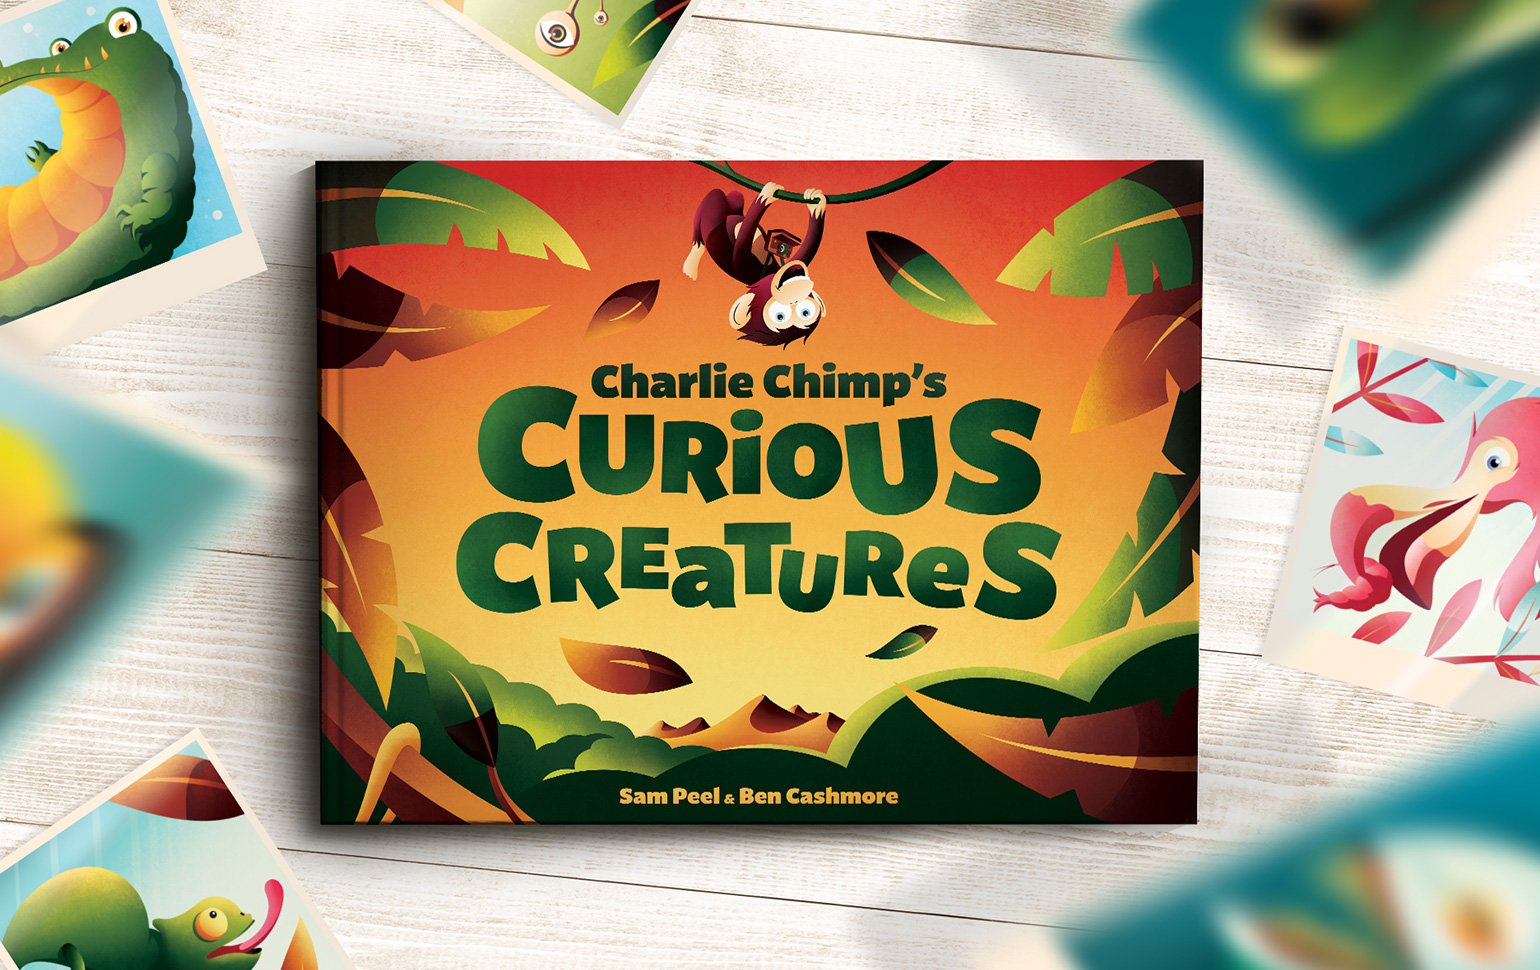 Charlie Chimps Curious Creatures